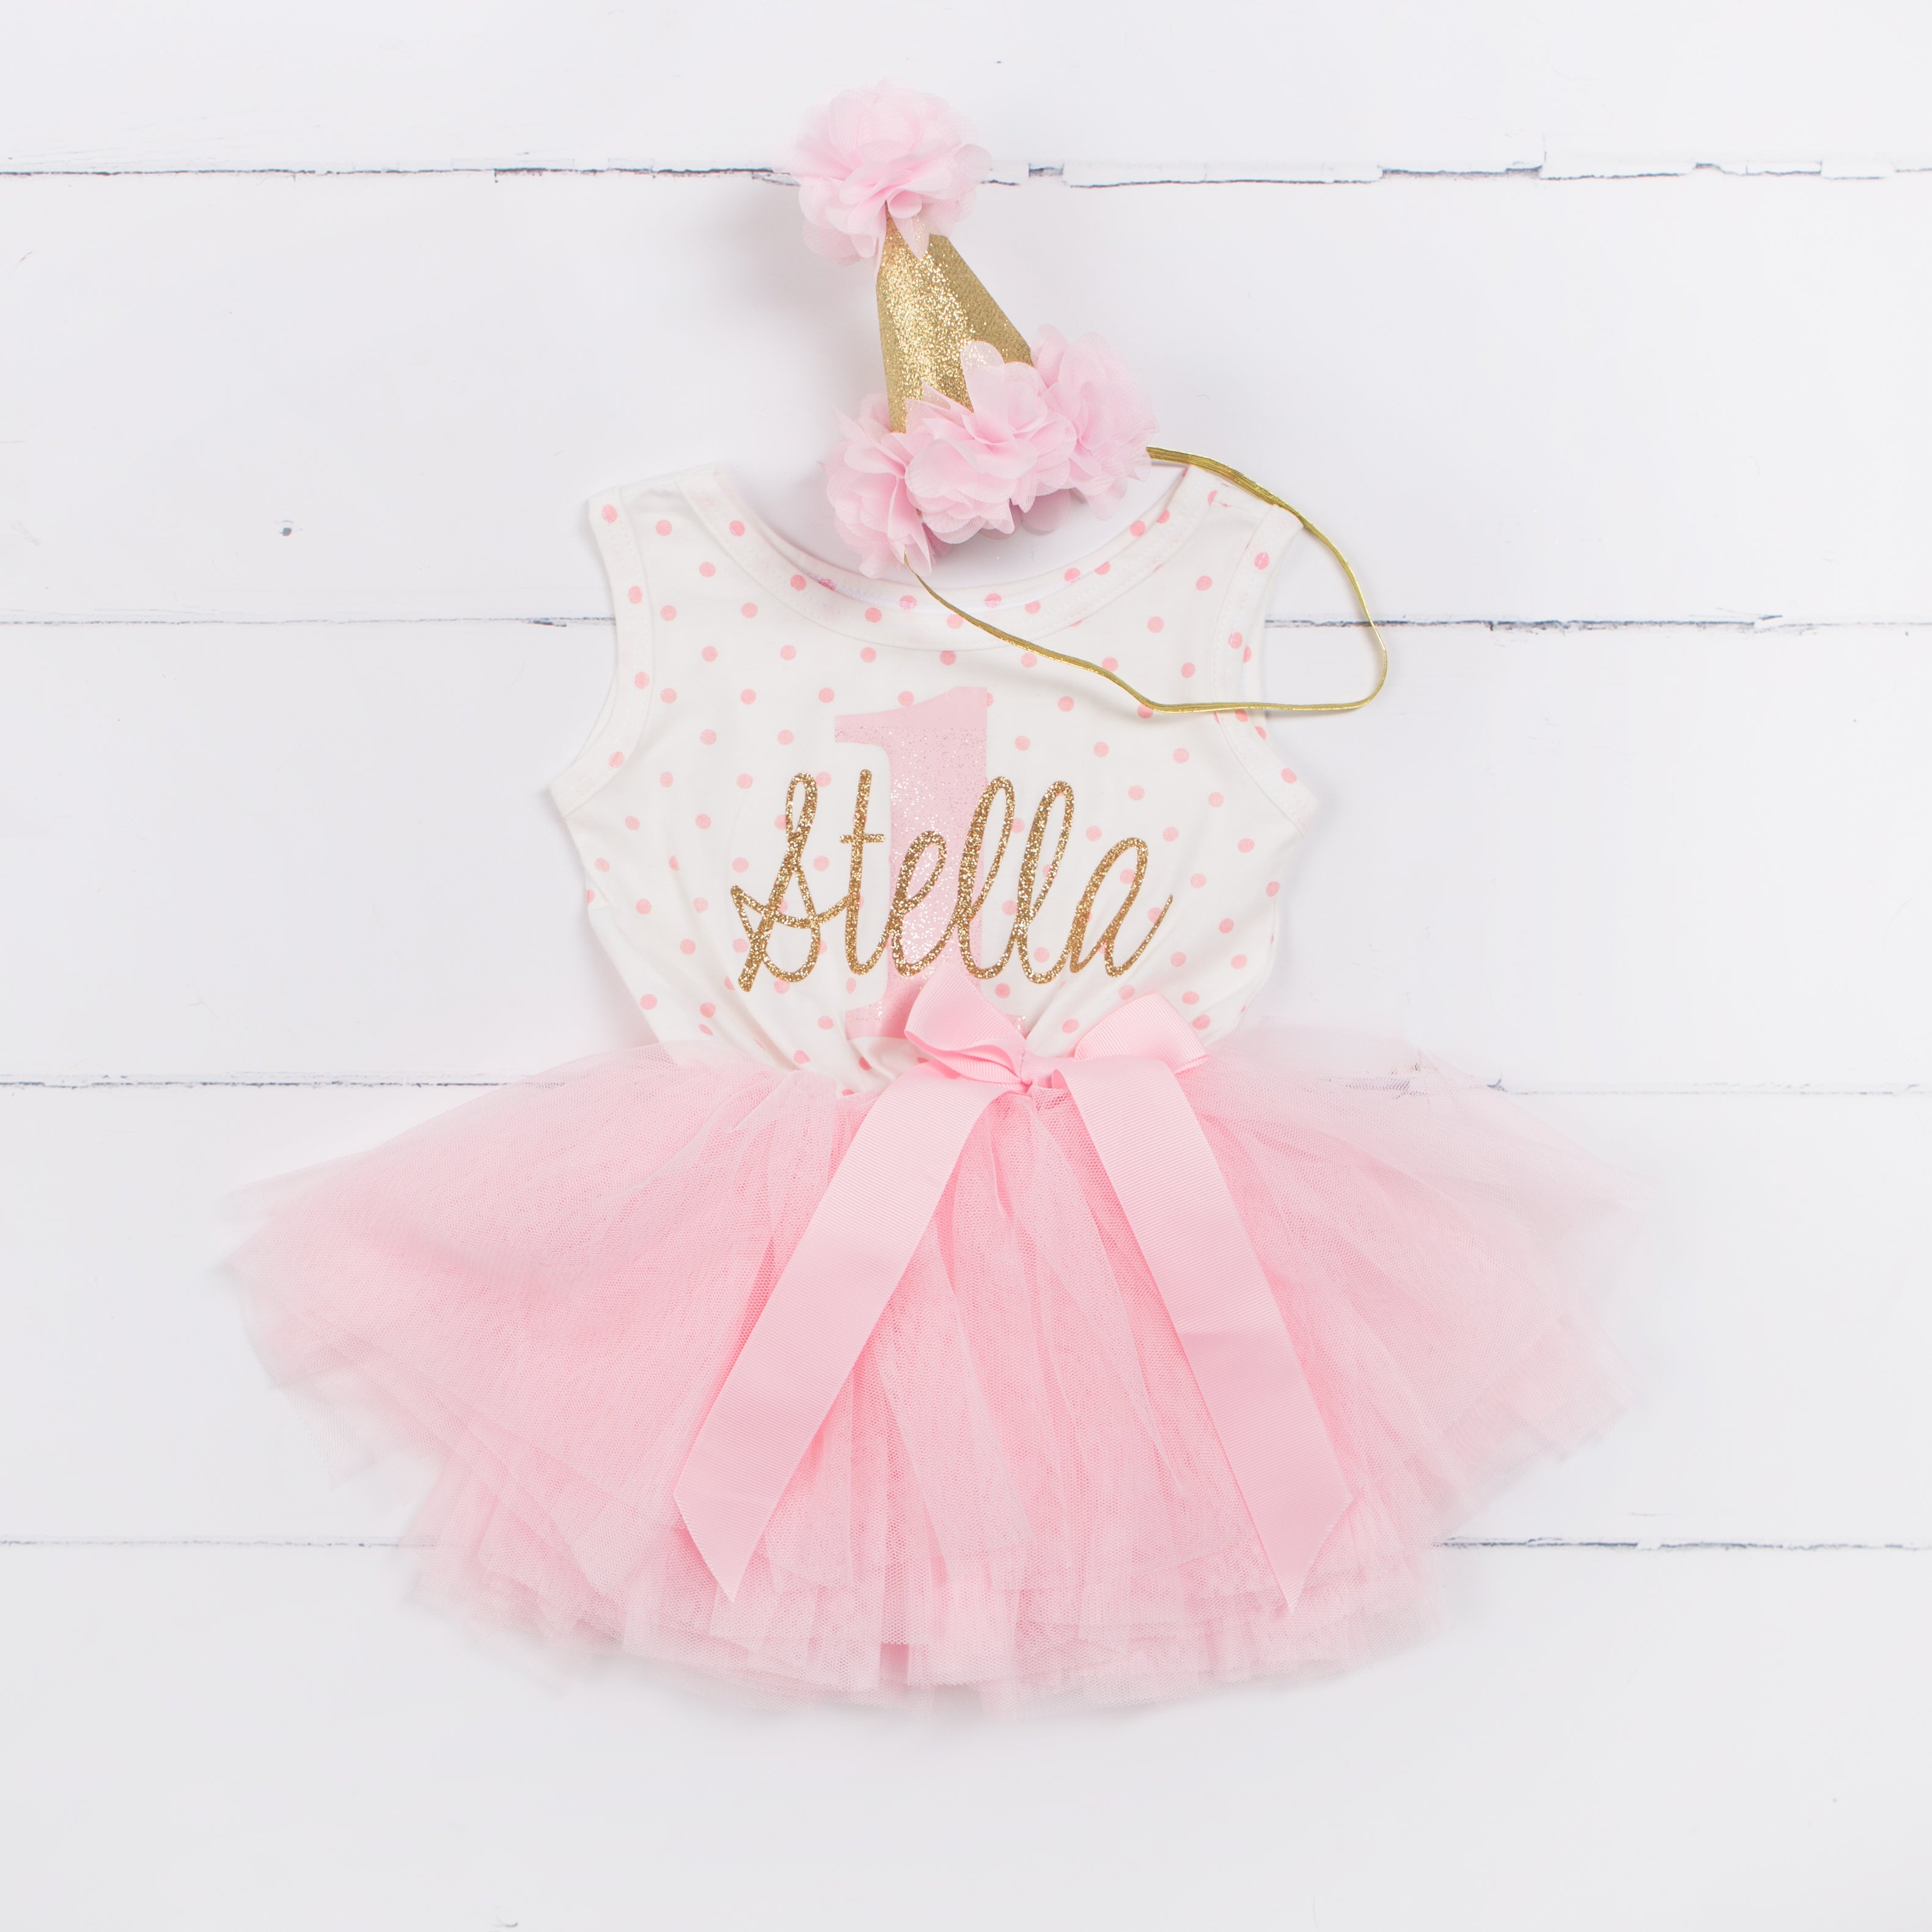 "1st Birthday Outfit ""Her Name & 1"" Pink Polka Dot Sleeveless Dress & Pink Party Hat"